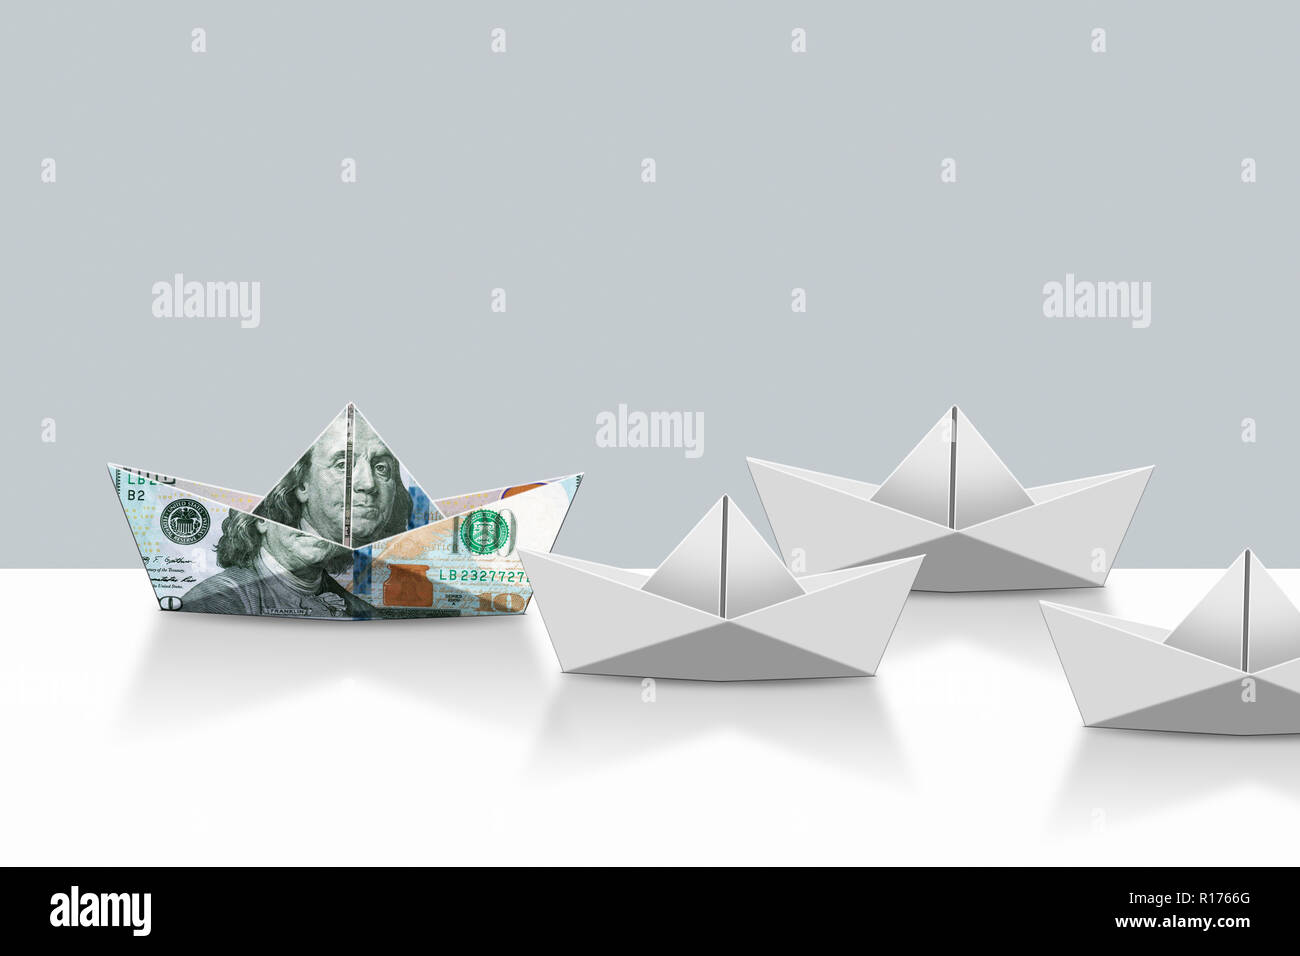 US dollar note and plain paper origami boats, grey background - Stock Image